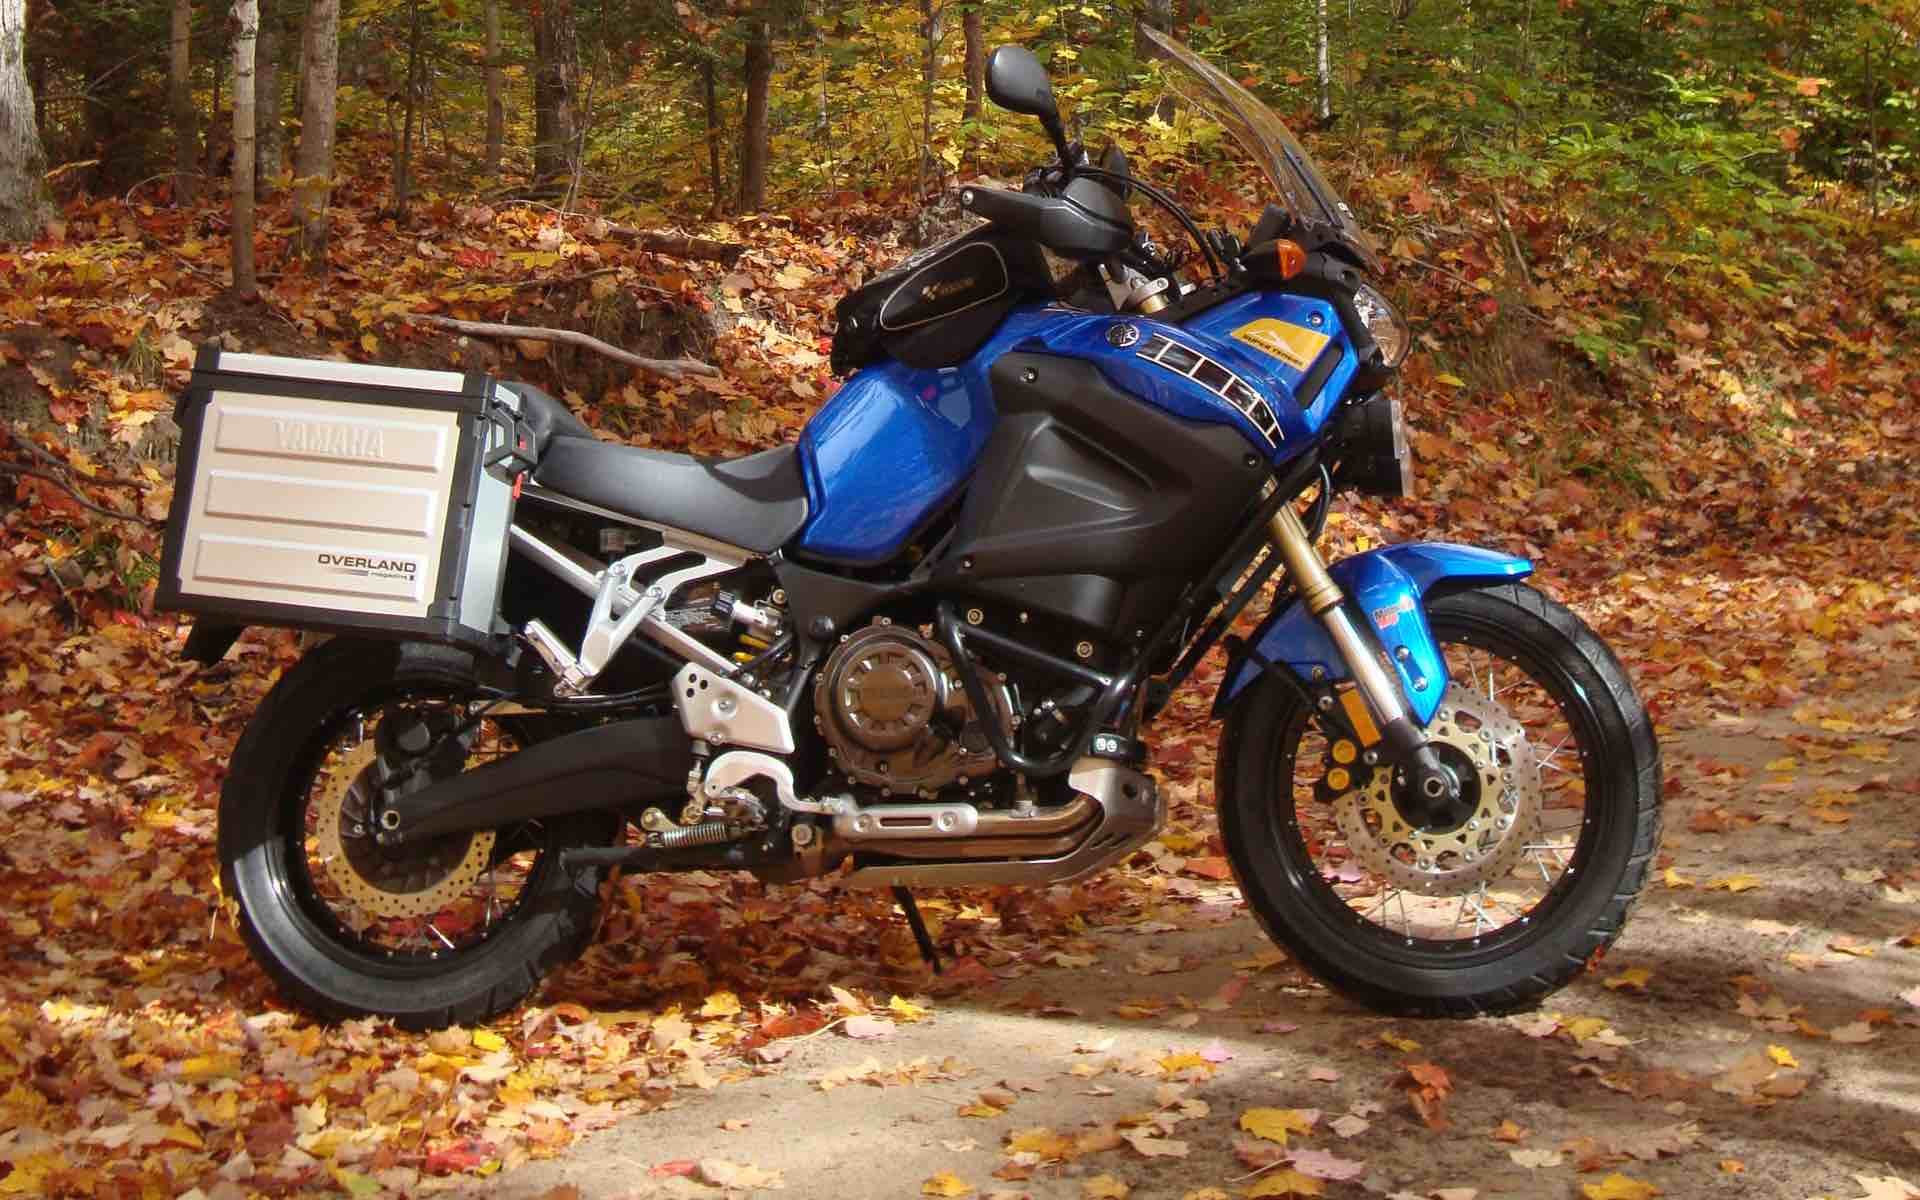 yamaha xtz 1200 super t n re review overland magazine. Black Bedroom Furniture Sets. Home Design Ideas